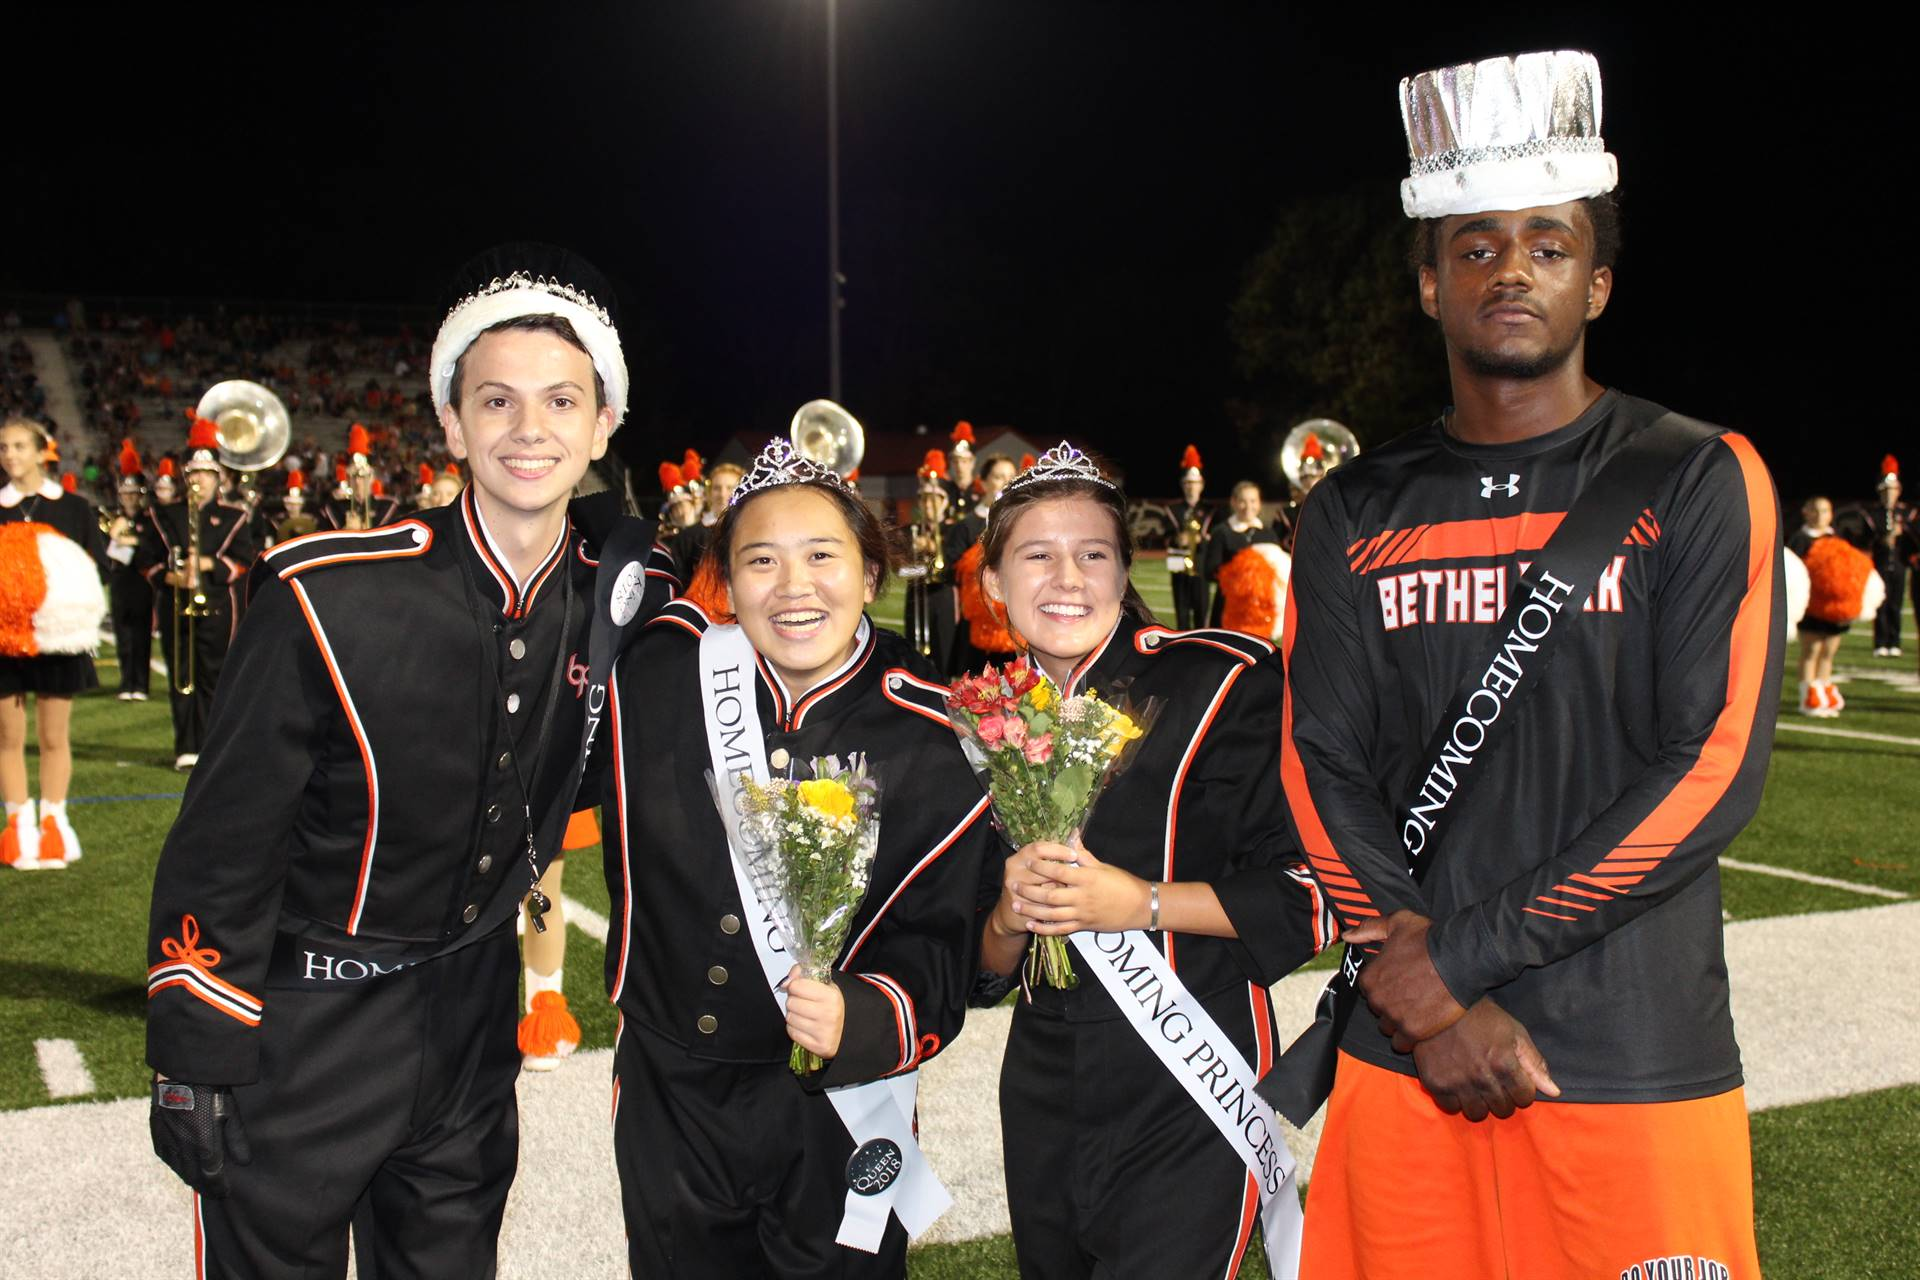 The Homecoming King, Queen, Princess and Prince